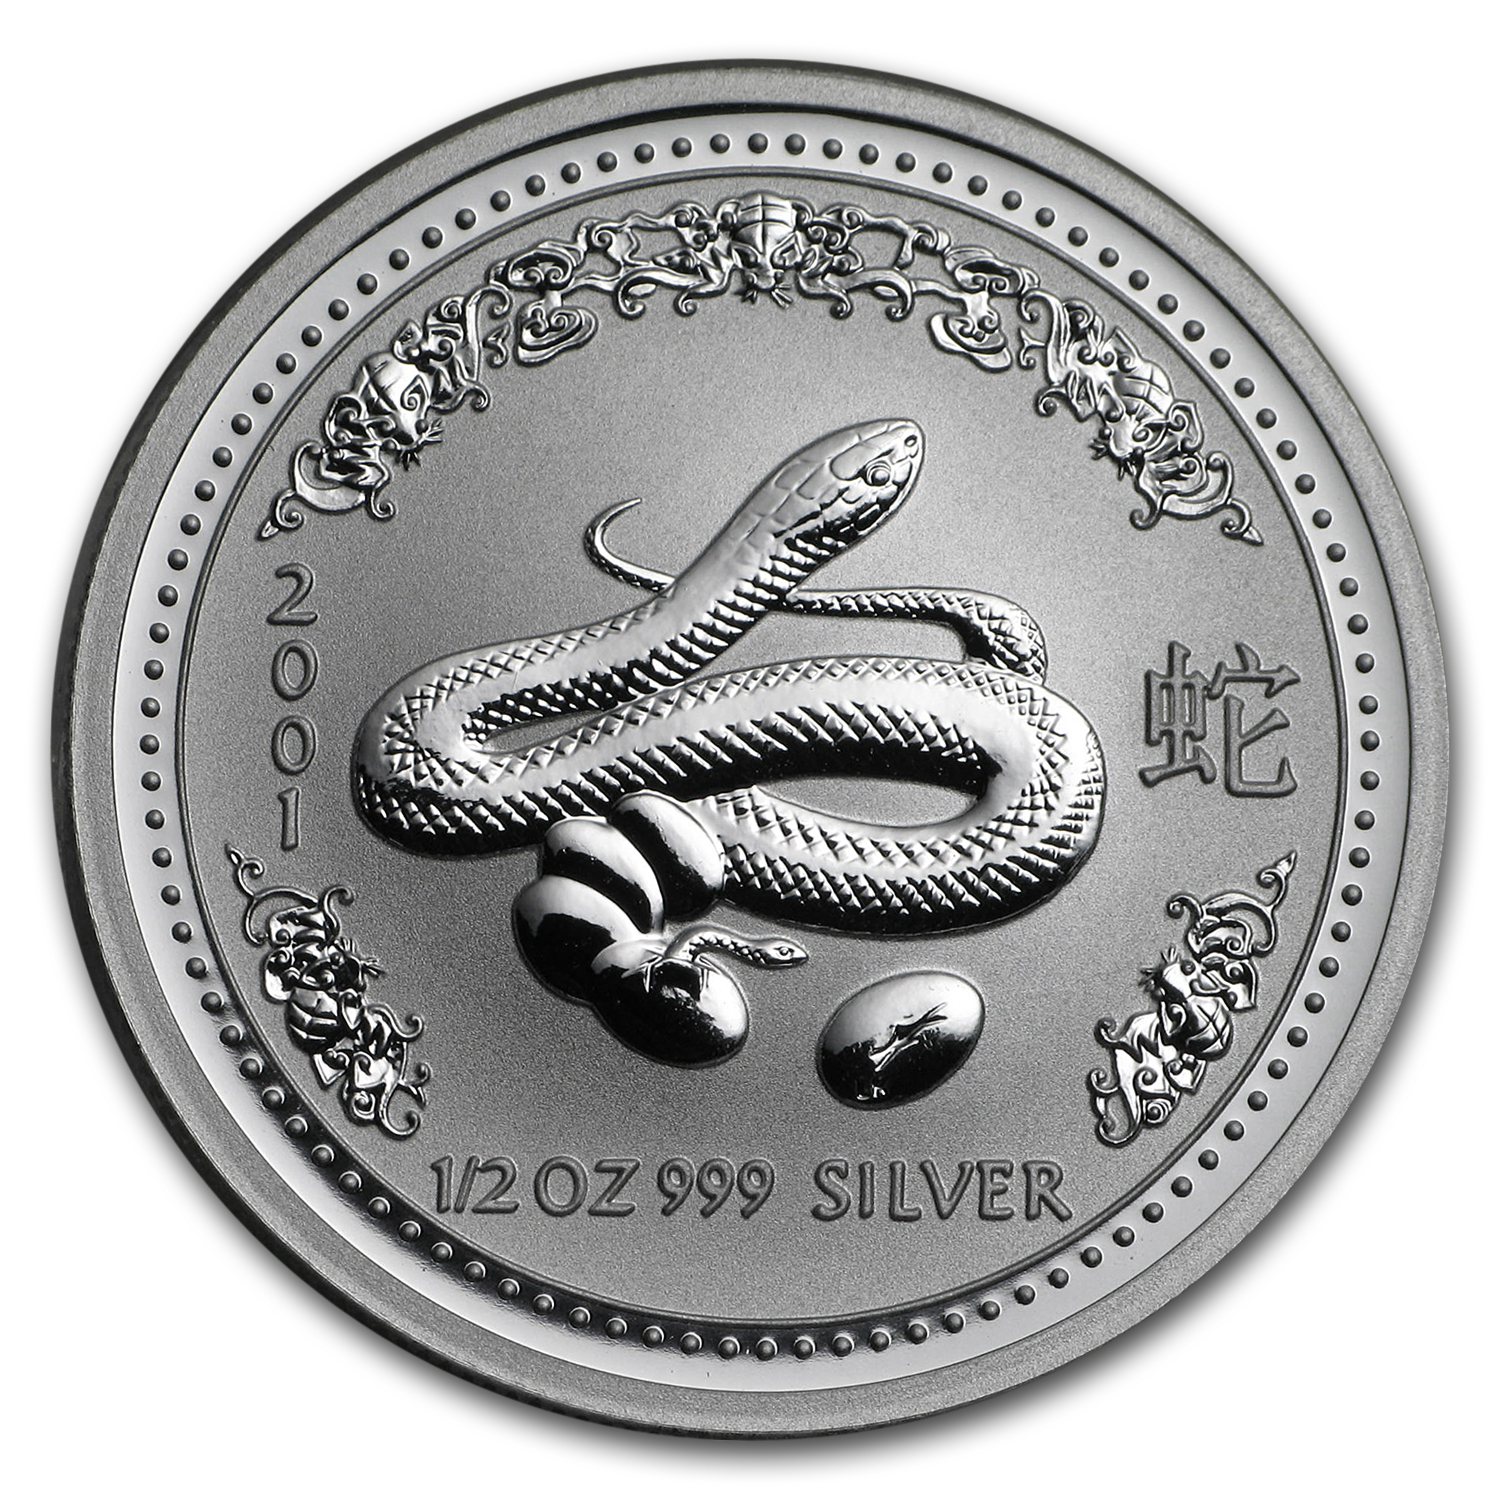 2001 Australia 1/2 oz Silver Year of the Snake BU